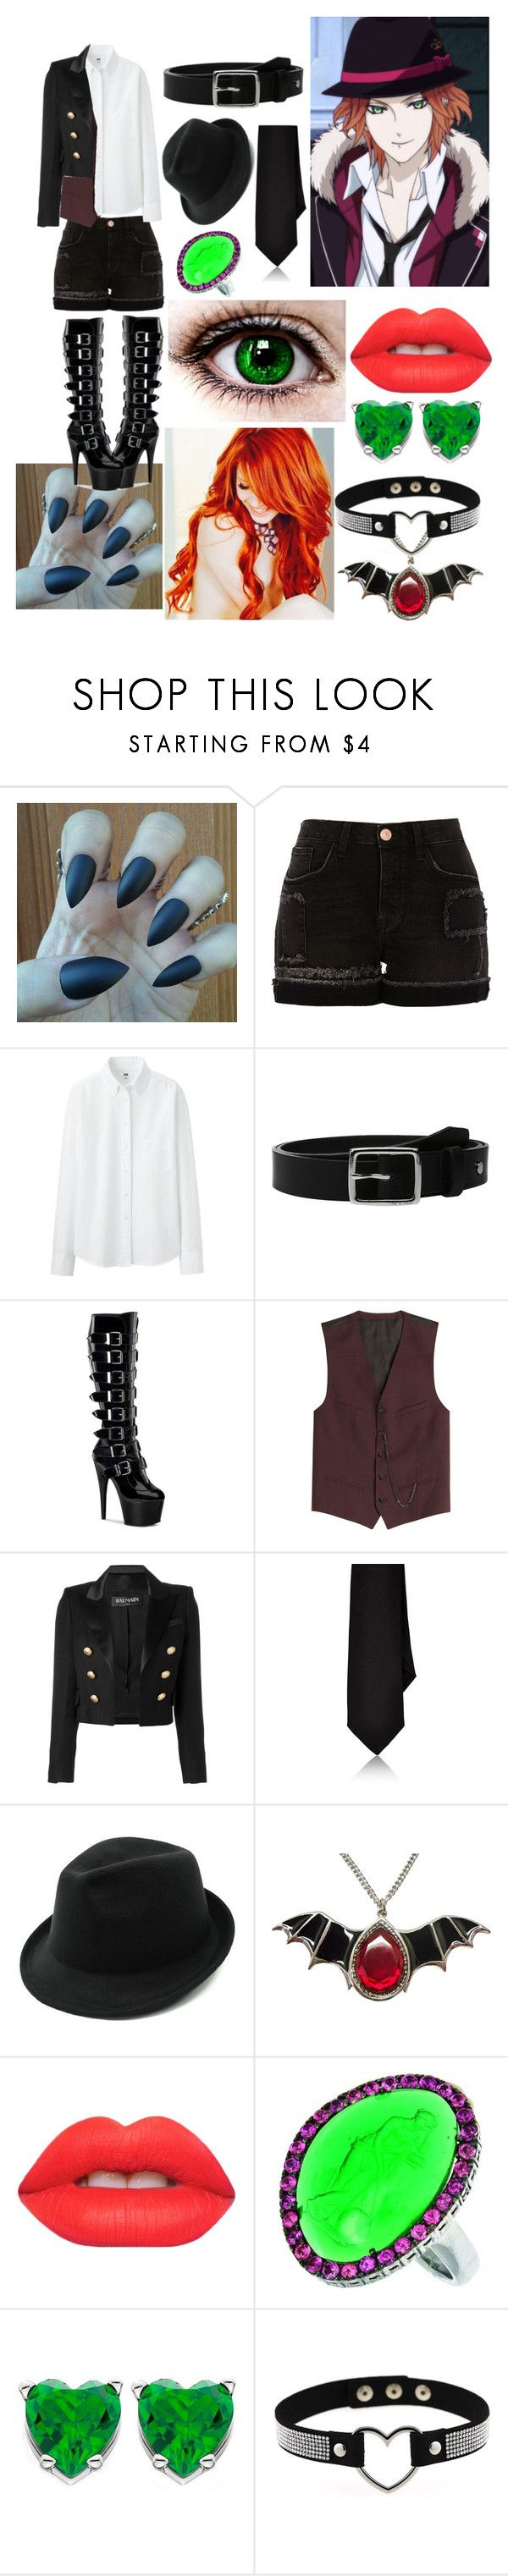 """Diabolik Lovers: Laito"" by maclauglk ❤ liked on Polyvore featuring River Island, Uniqlo, rag & bone, The Kooples, Balmain, Barneys New York, Lime Crime and Phillip Gavriel"